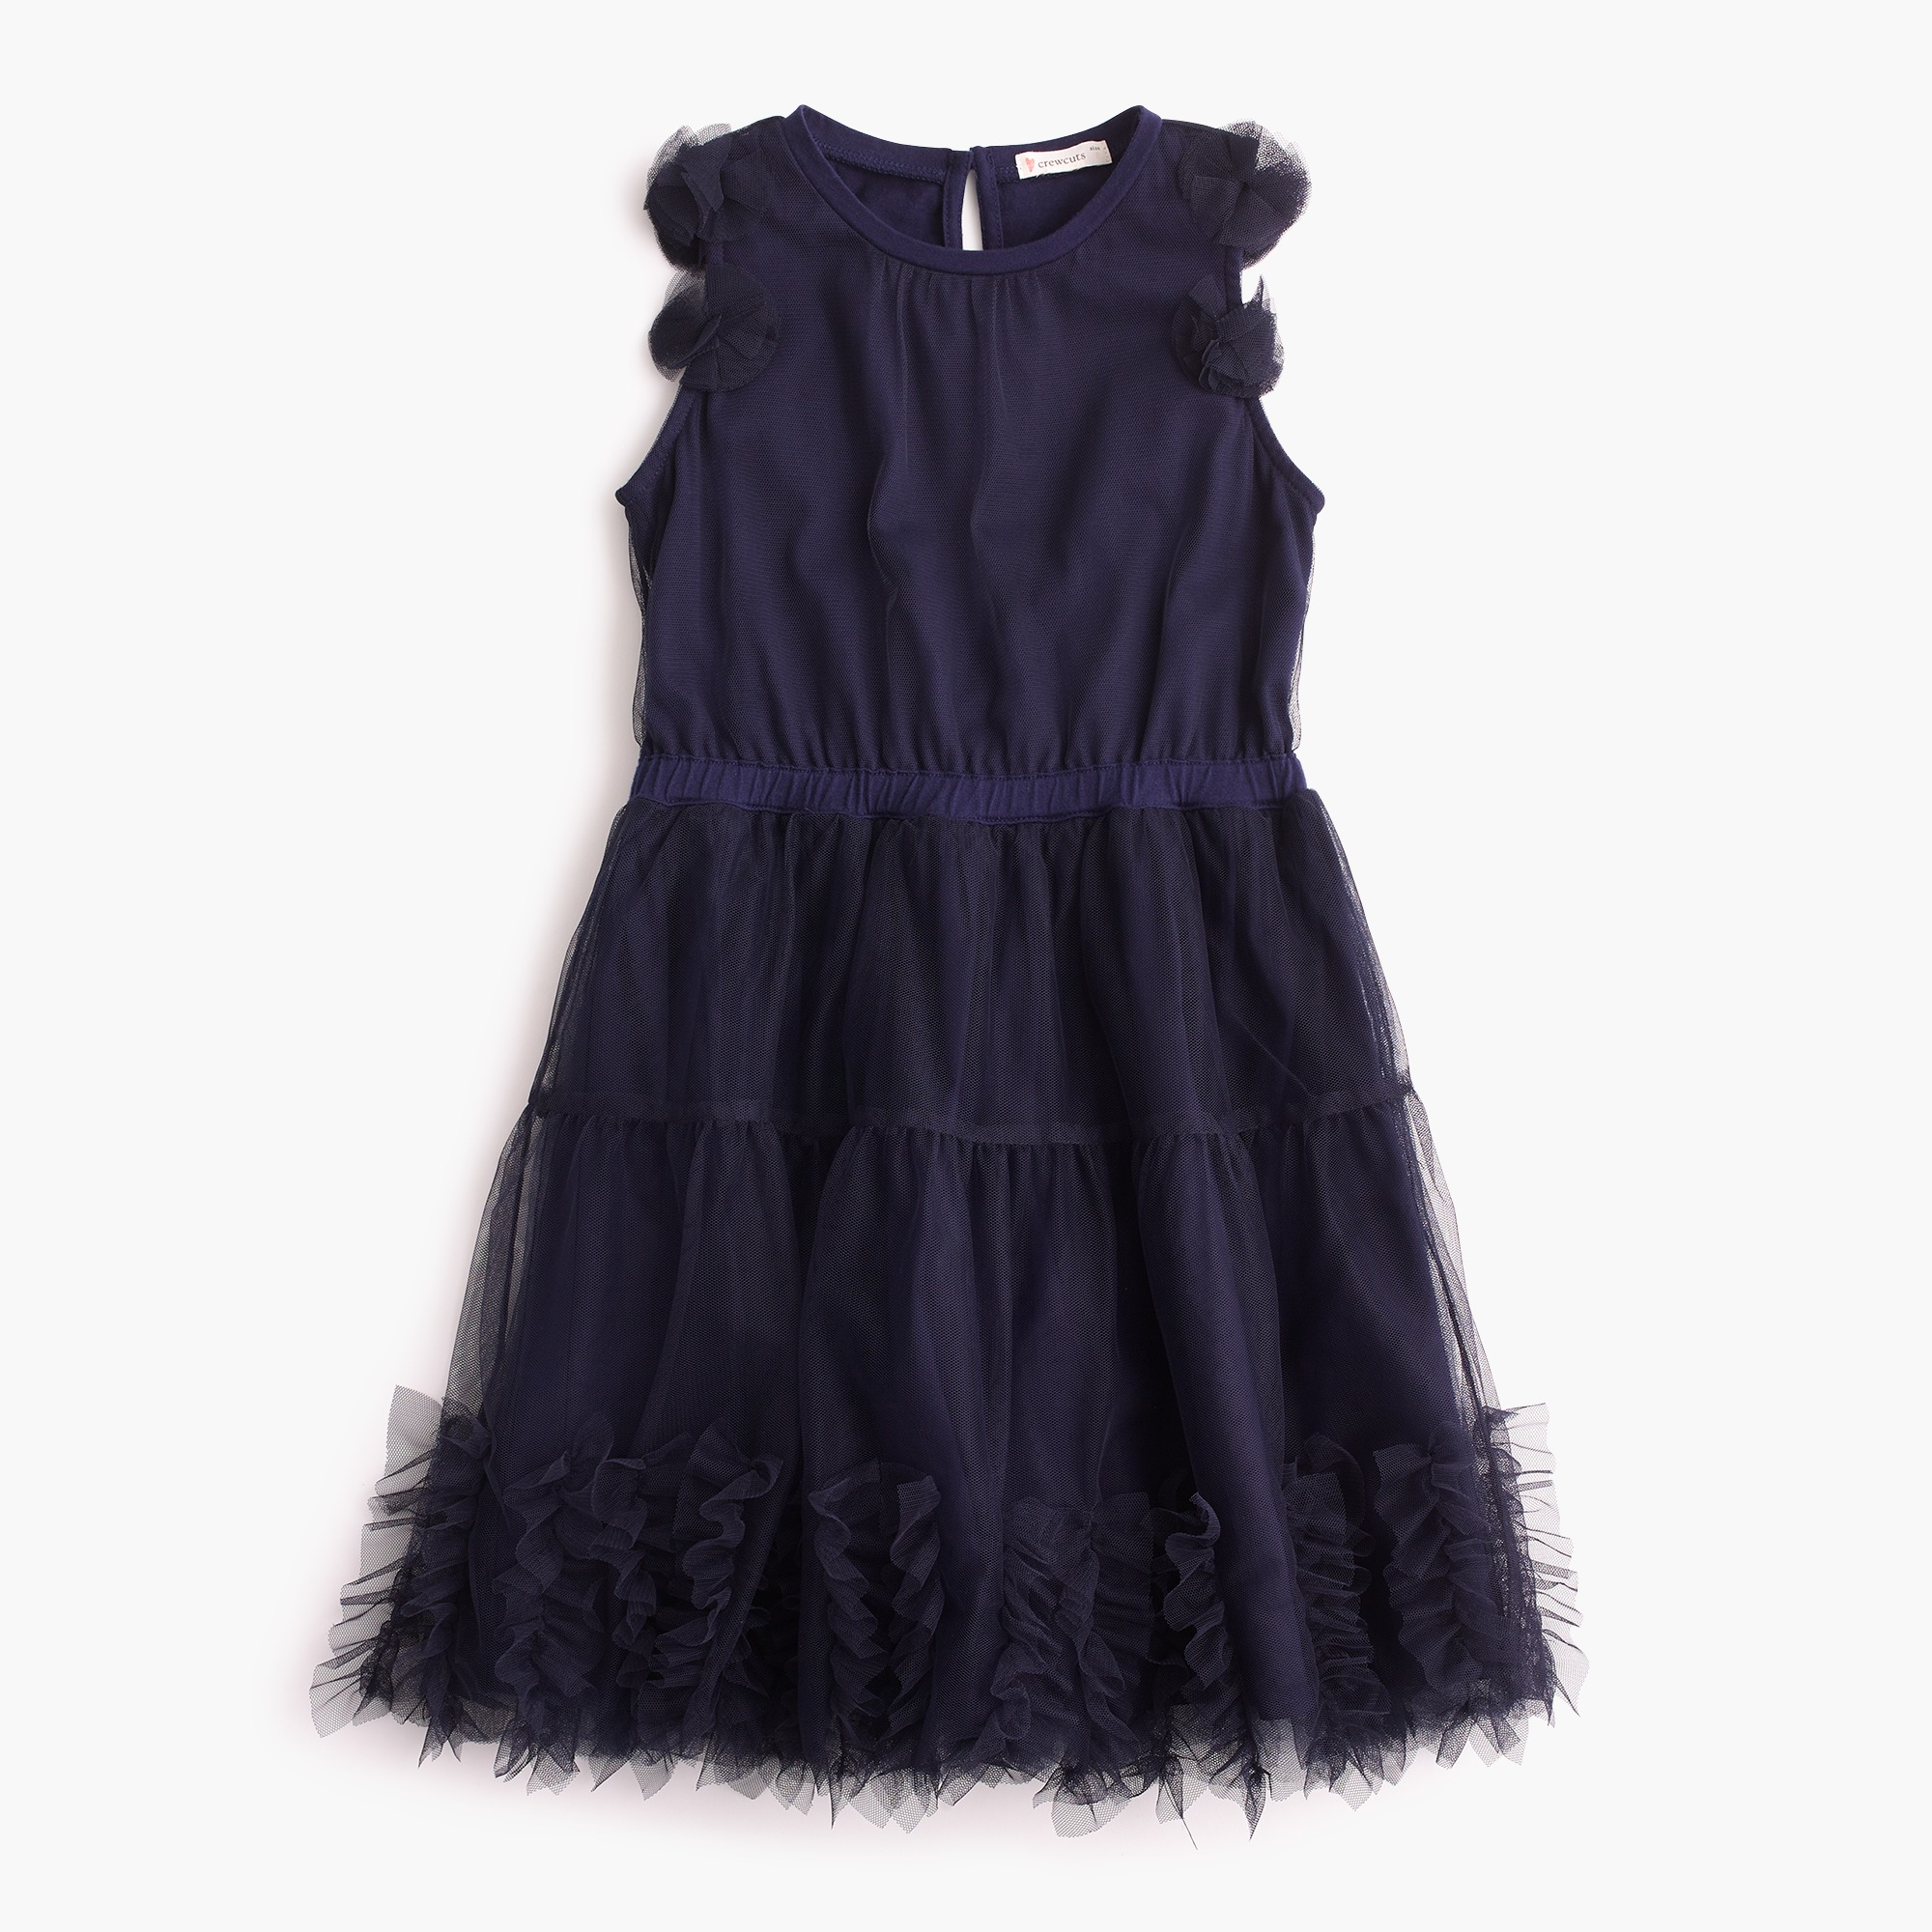 Girls' embellished tulle dress girl dresses & jumpsuits c